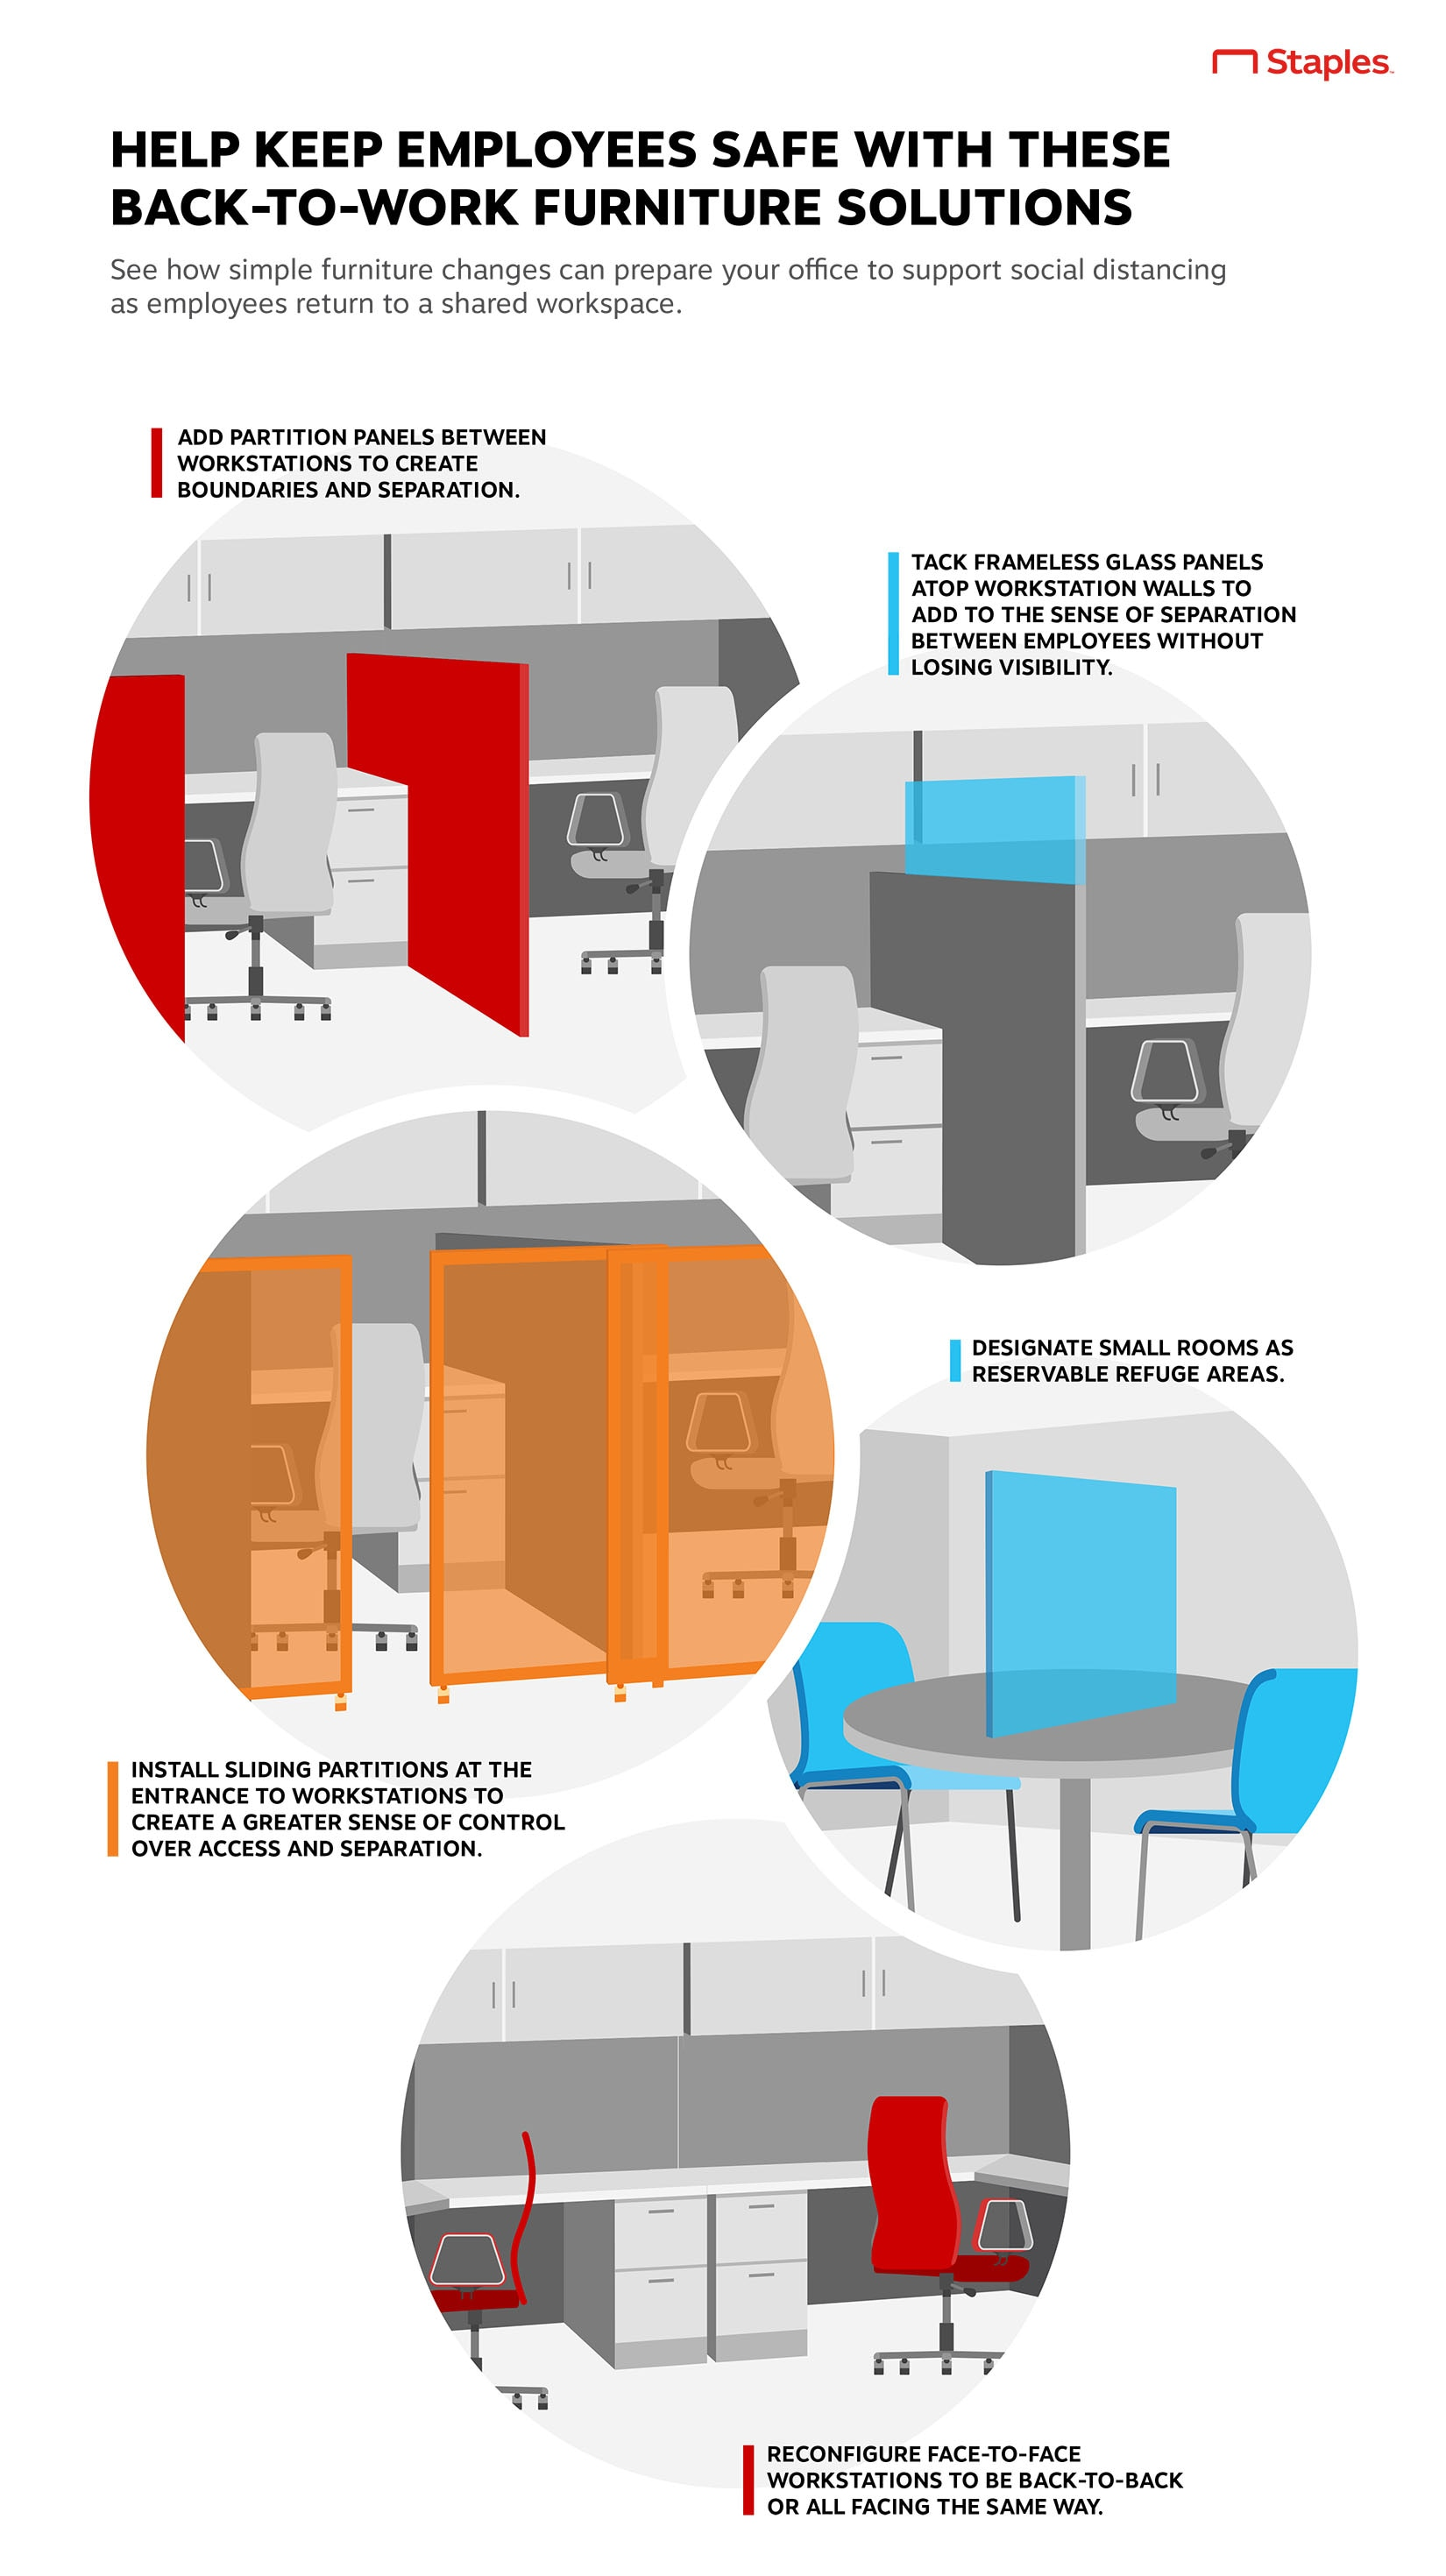 Help Keep Employees Safe With These Back-to-Work Furniture Solutions